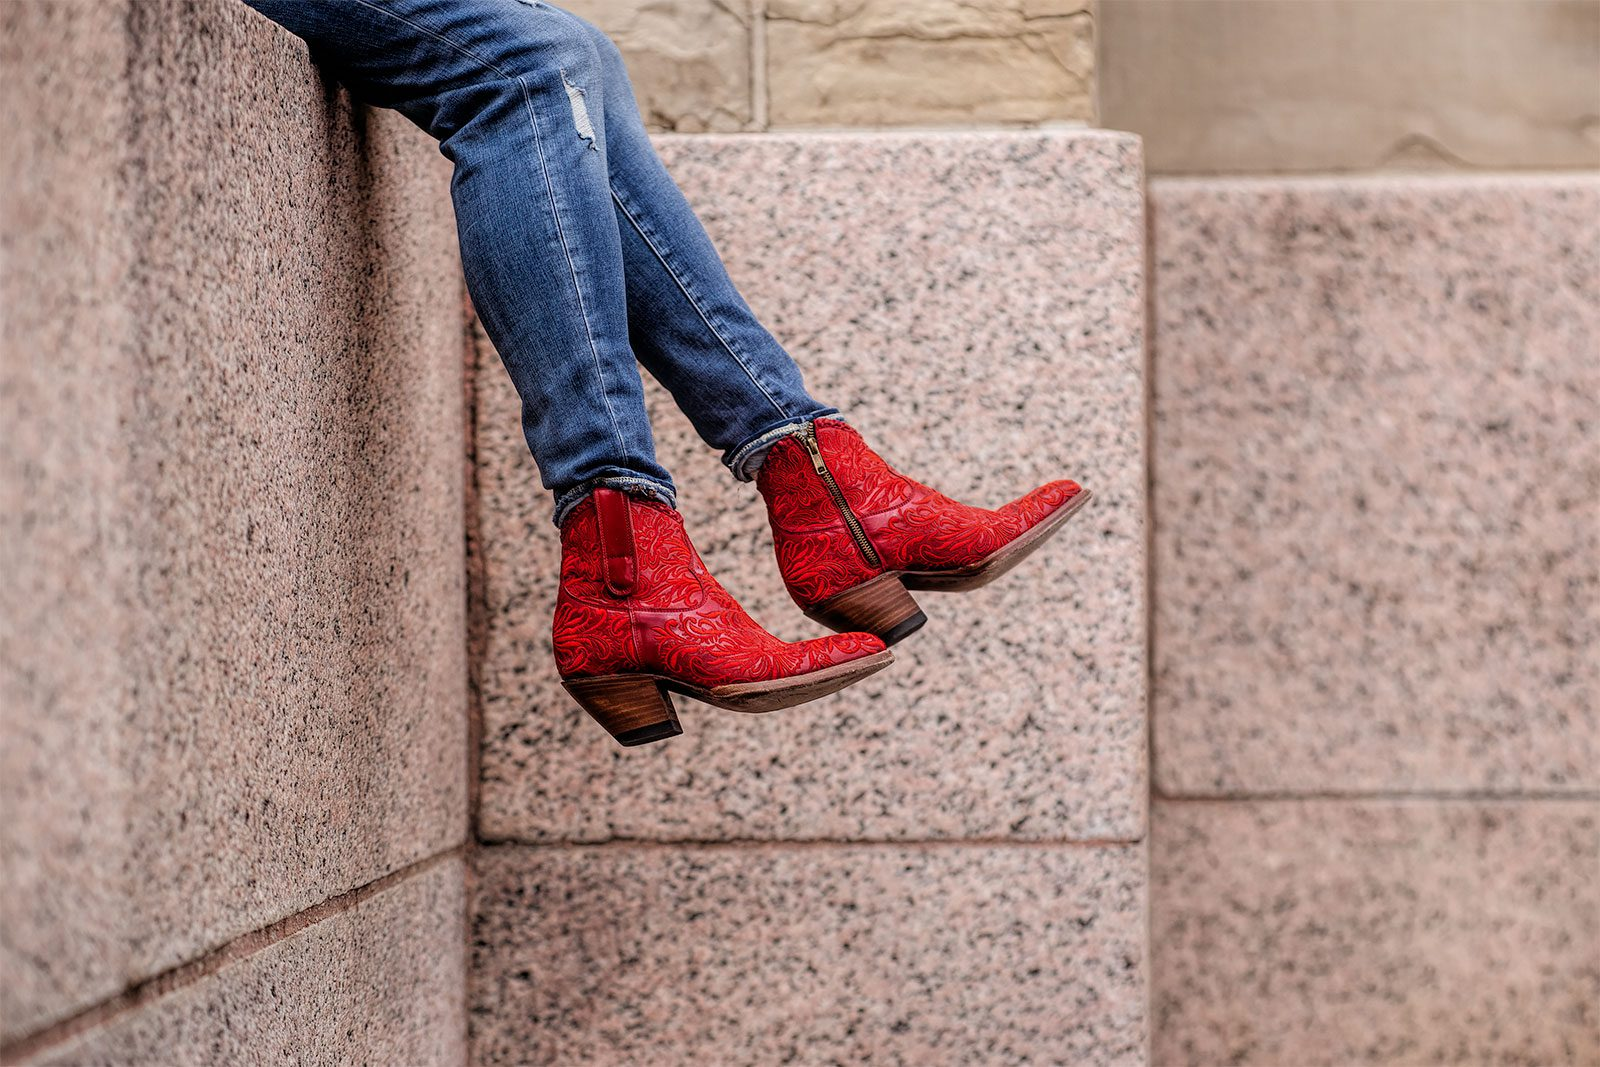 Viv Dangling Her Red Mila Boots